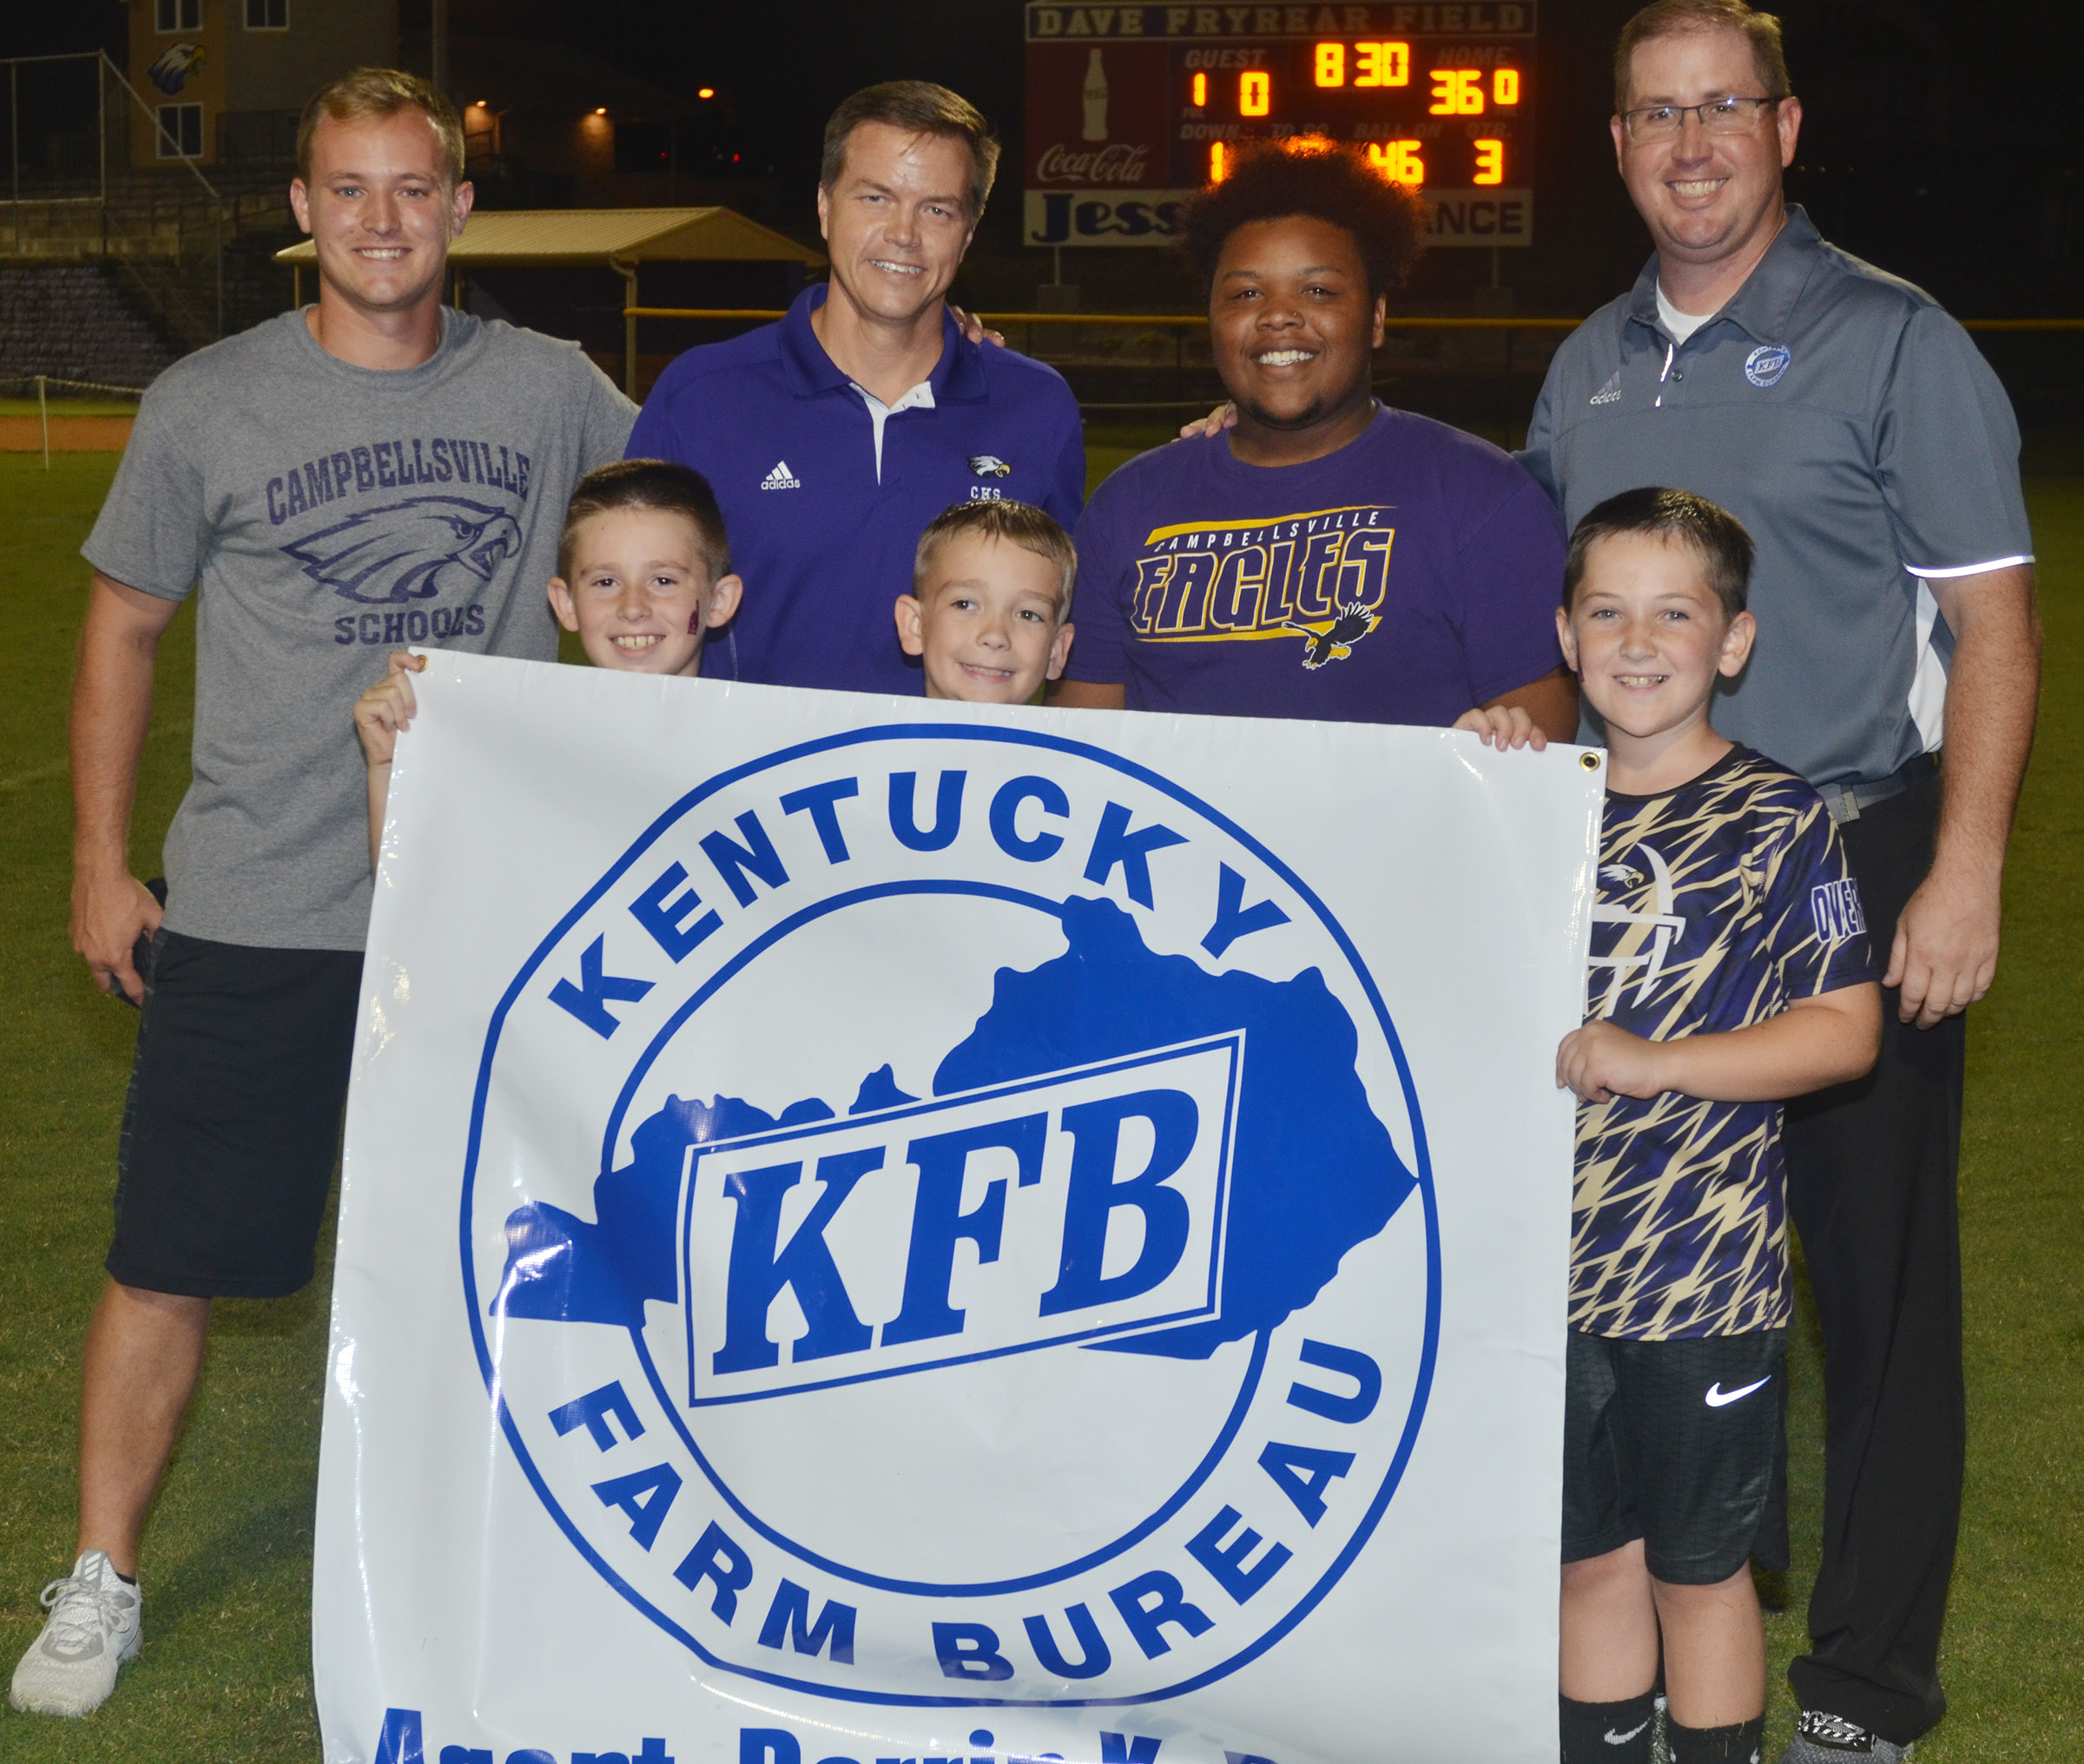 Kentucky Farm Bureau sponsors the Kick for Kids, which awards $50 for a successful field goal attempt during halftime. From left, front, are Campbellsville Elementary School third-grader Lanigan Price, fourth-grader Cameron Estes and third-grader Luke Adkins. Back, CES AmeriCorps tutor Bradley Bates, Campbellsville Independent Schools Associate Superintendent and Finance Director Chris Kidwell, who made the field goal, CHS senior Darius Wright, who received $50 for Kidwell's successful kick, and Farm Bureau agent Darrin Price.